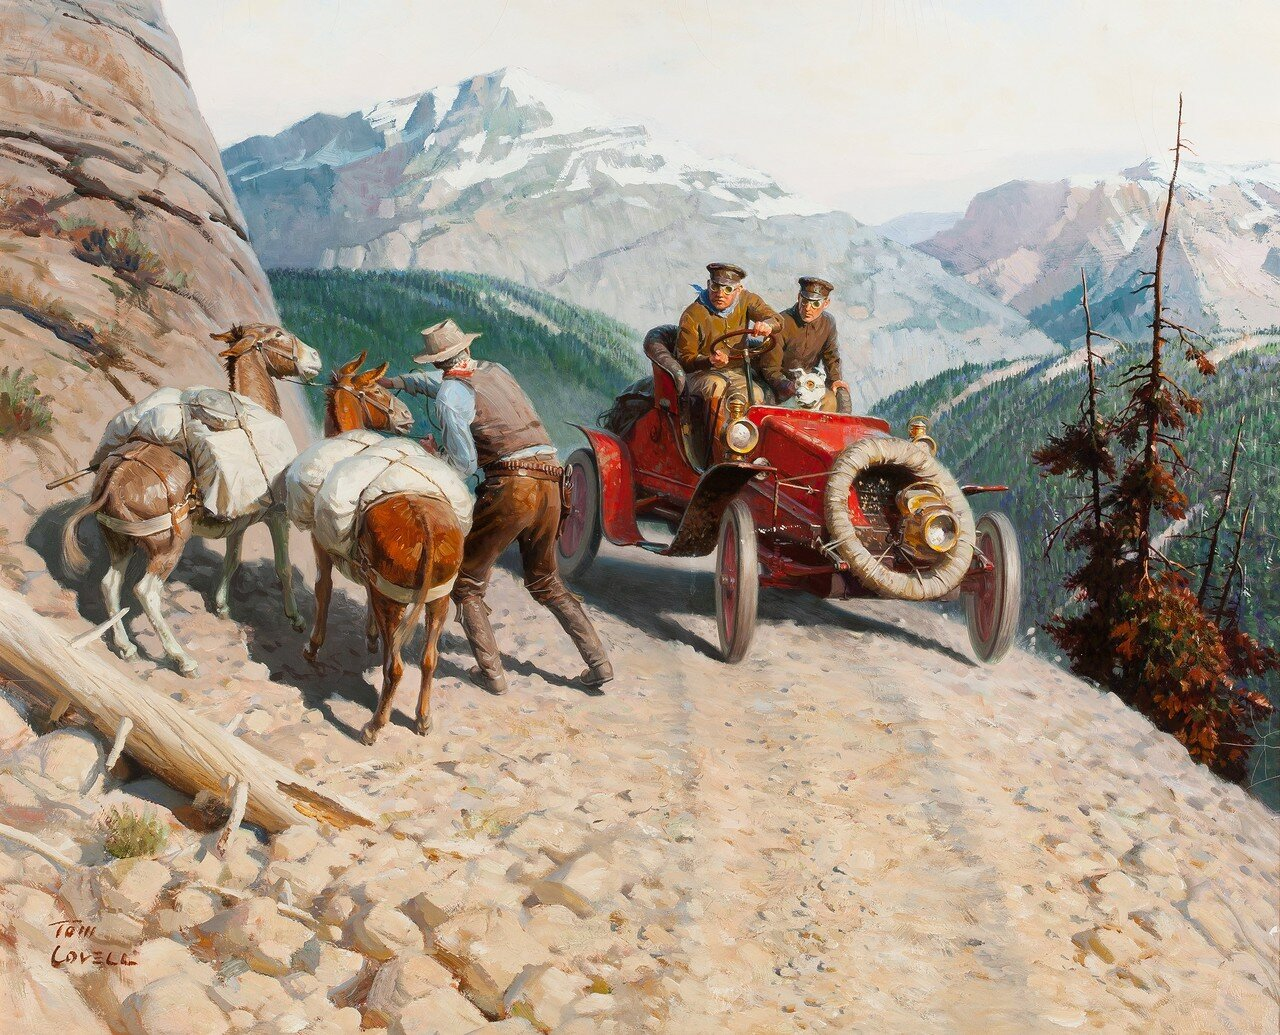 TOM LOVELL (American, 1909-1997). Dr. Jackson Blazes a Transcontinental Trail, Great Moments in Early American Motoring.jpg